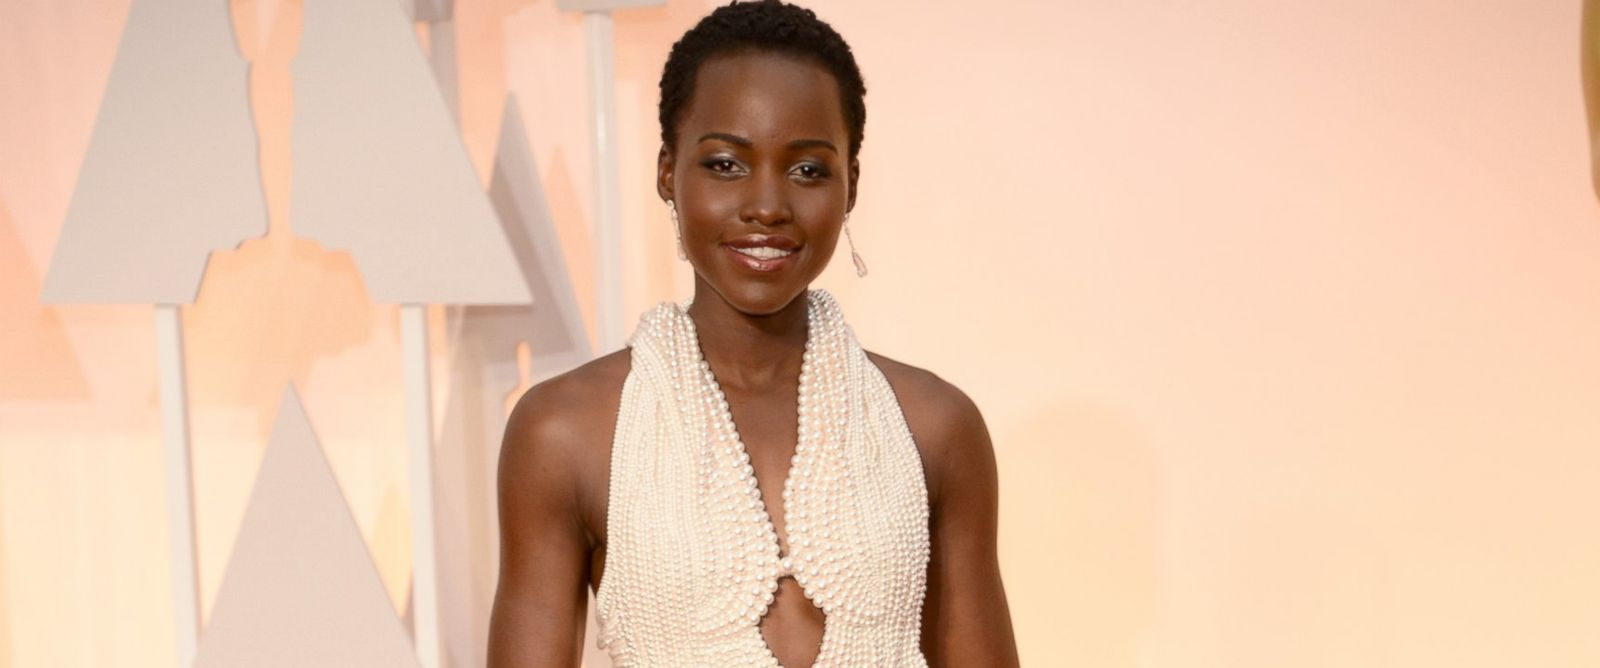 PHOTO: Actress Lupita Nyongo arrives in Chopard to the 87th Annual Academy Awards on Feb. 22, 2015 in Hollywood, California.